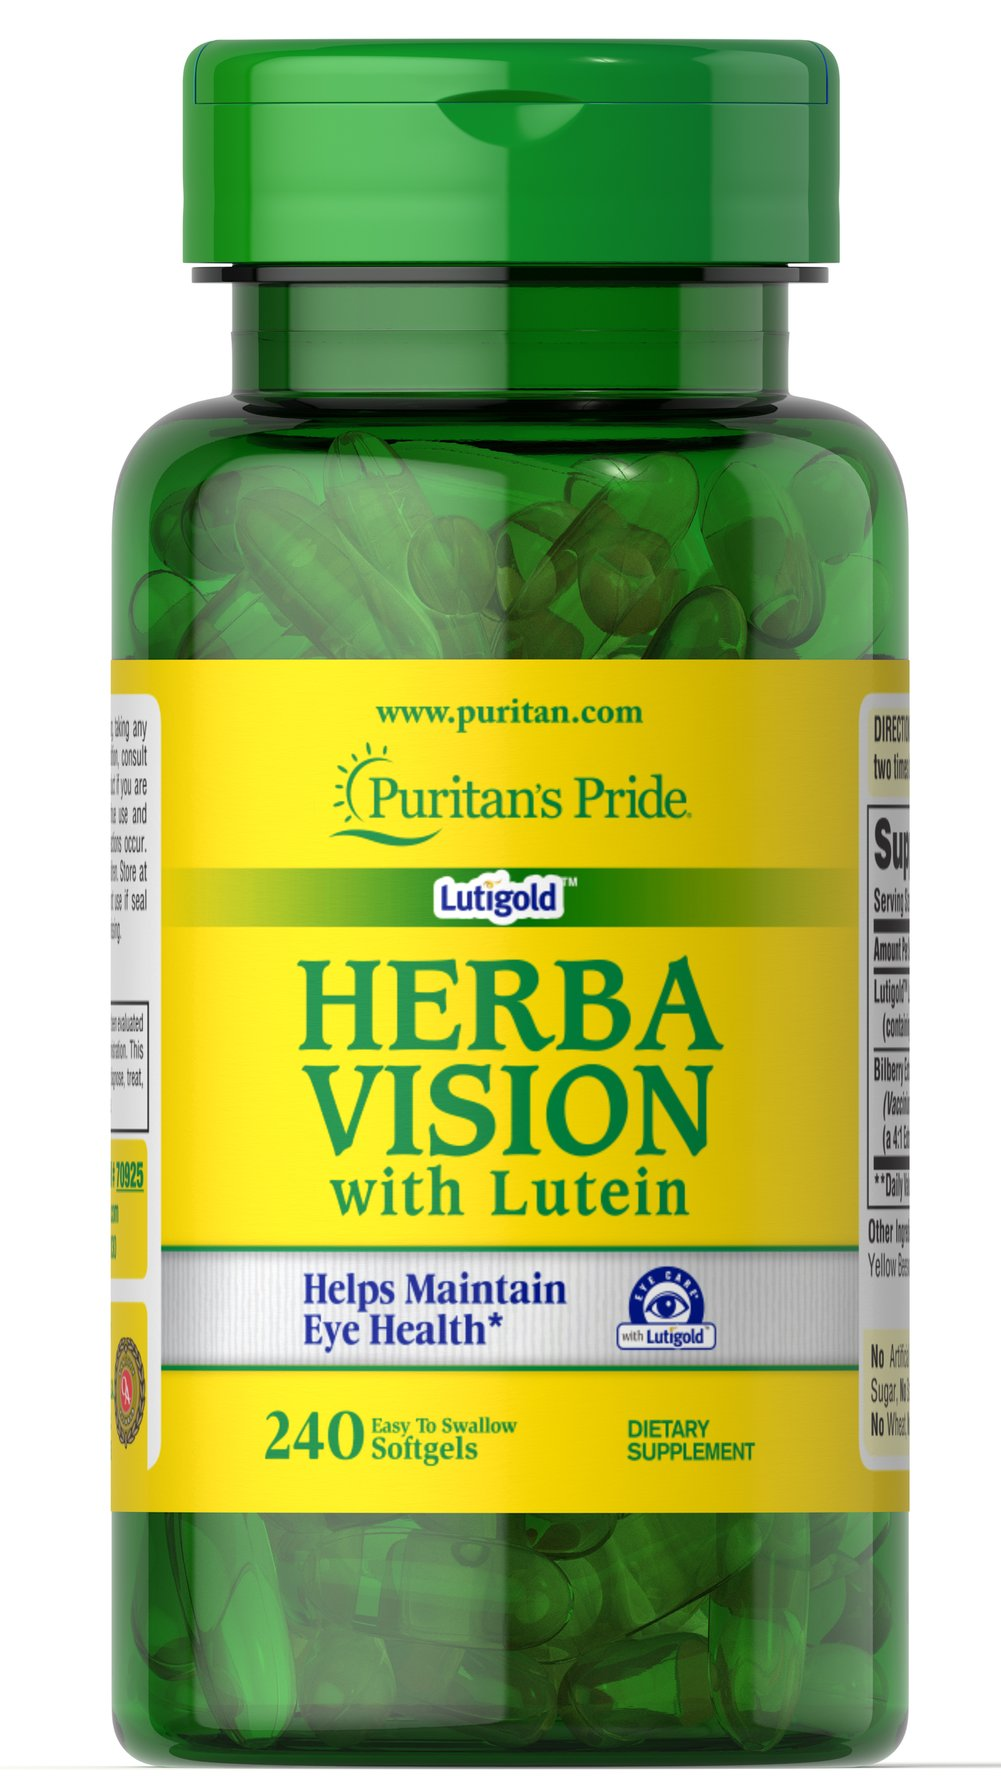 Herbavision with Lutein and Bilberry <p><b>Nutritional support for your eyes**</b></p><p>Contributes to clear, healthy vision**</p><p>Formulated with Lutigold™ Lutein, derived from pure, natural sources</p> <p>Contains naturally occurring protective antioxidants and active carotenoids, such as Zeaxanthin, for synergistic support**</p>  <p>Comes in convenient, easy-to-swallow softgels</p> 240 Softgels  $41.99